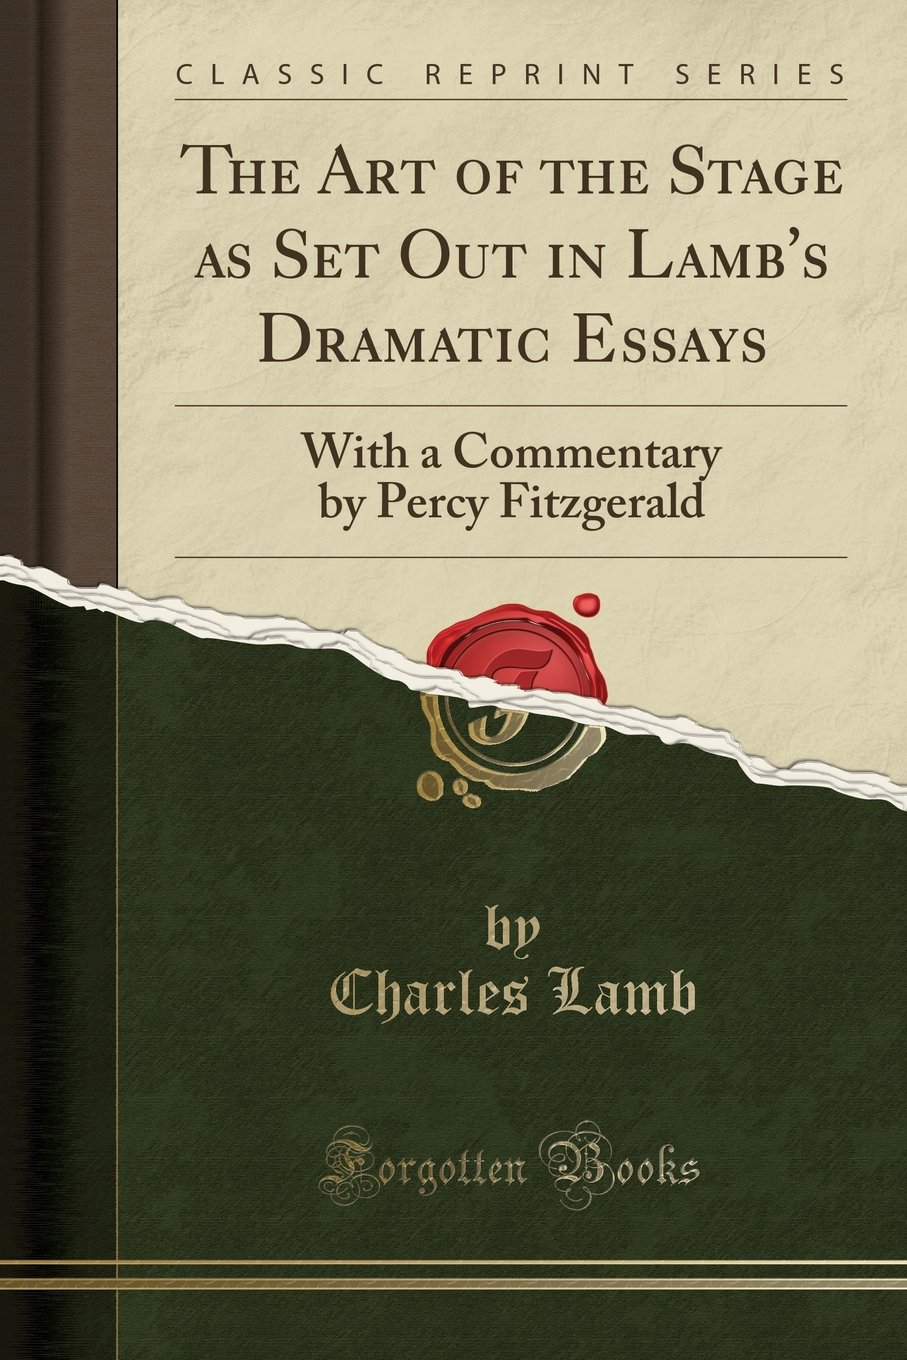 The Art of the Stage as Set Out in Lamb's Dramatic Essays: With a Commentary by Percy Fitzgerald (Classic Reprint) pdf epub